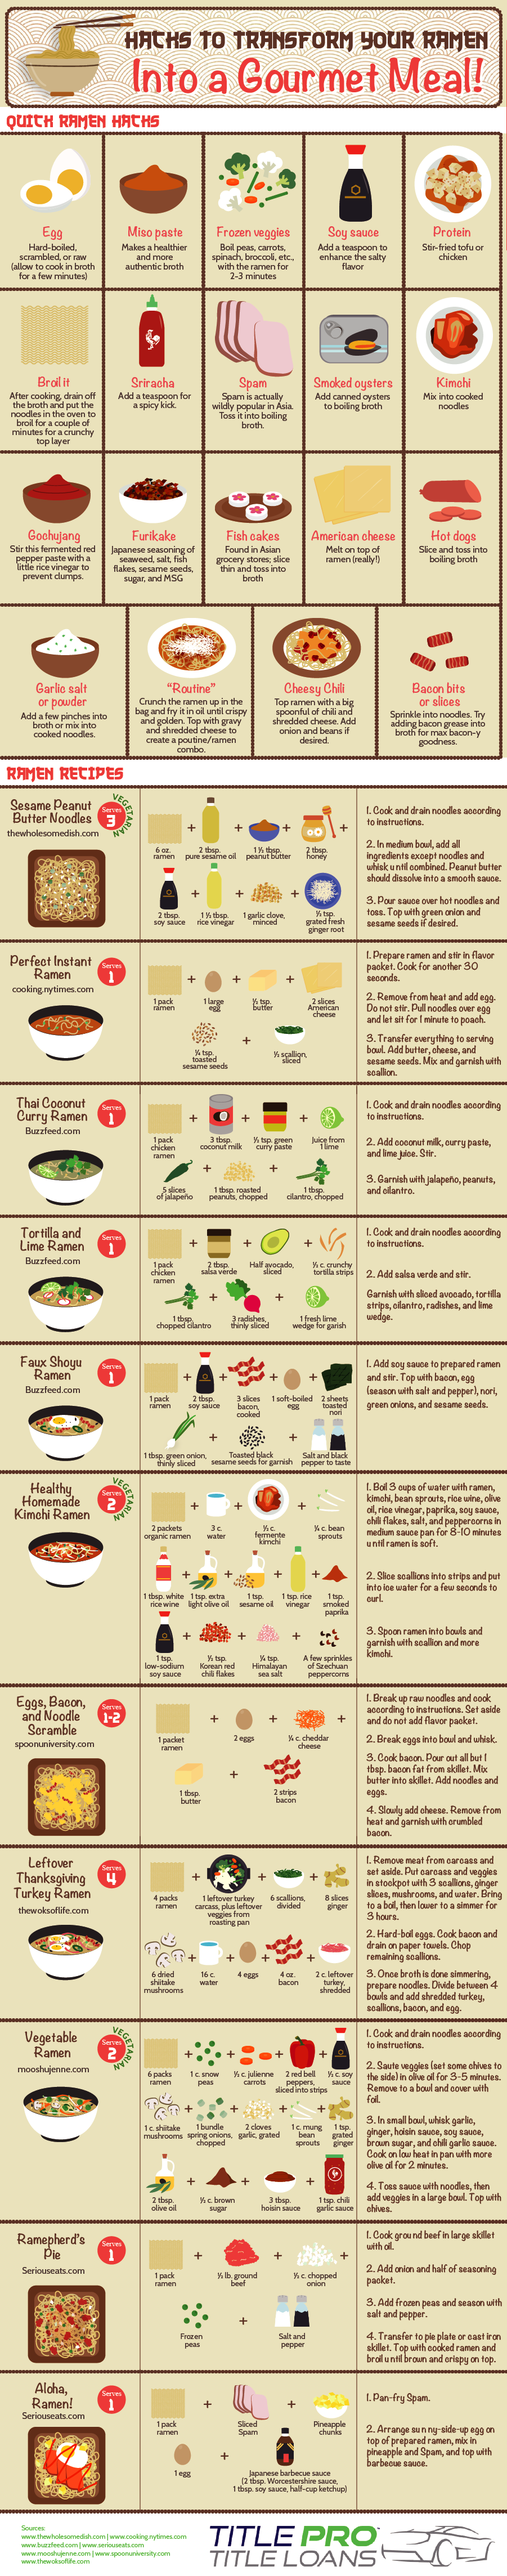 The Art of Gourmet Ramen: Delicious Hacks to Up Your Ramen Offering! - Infographic